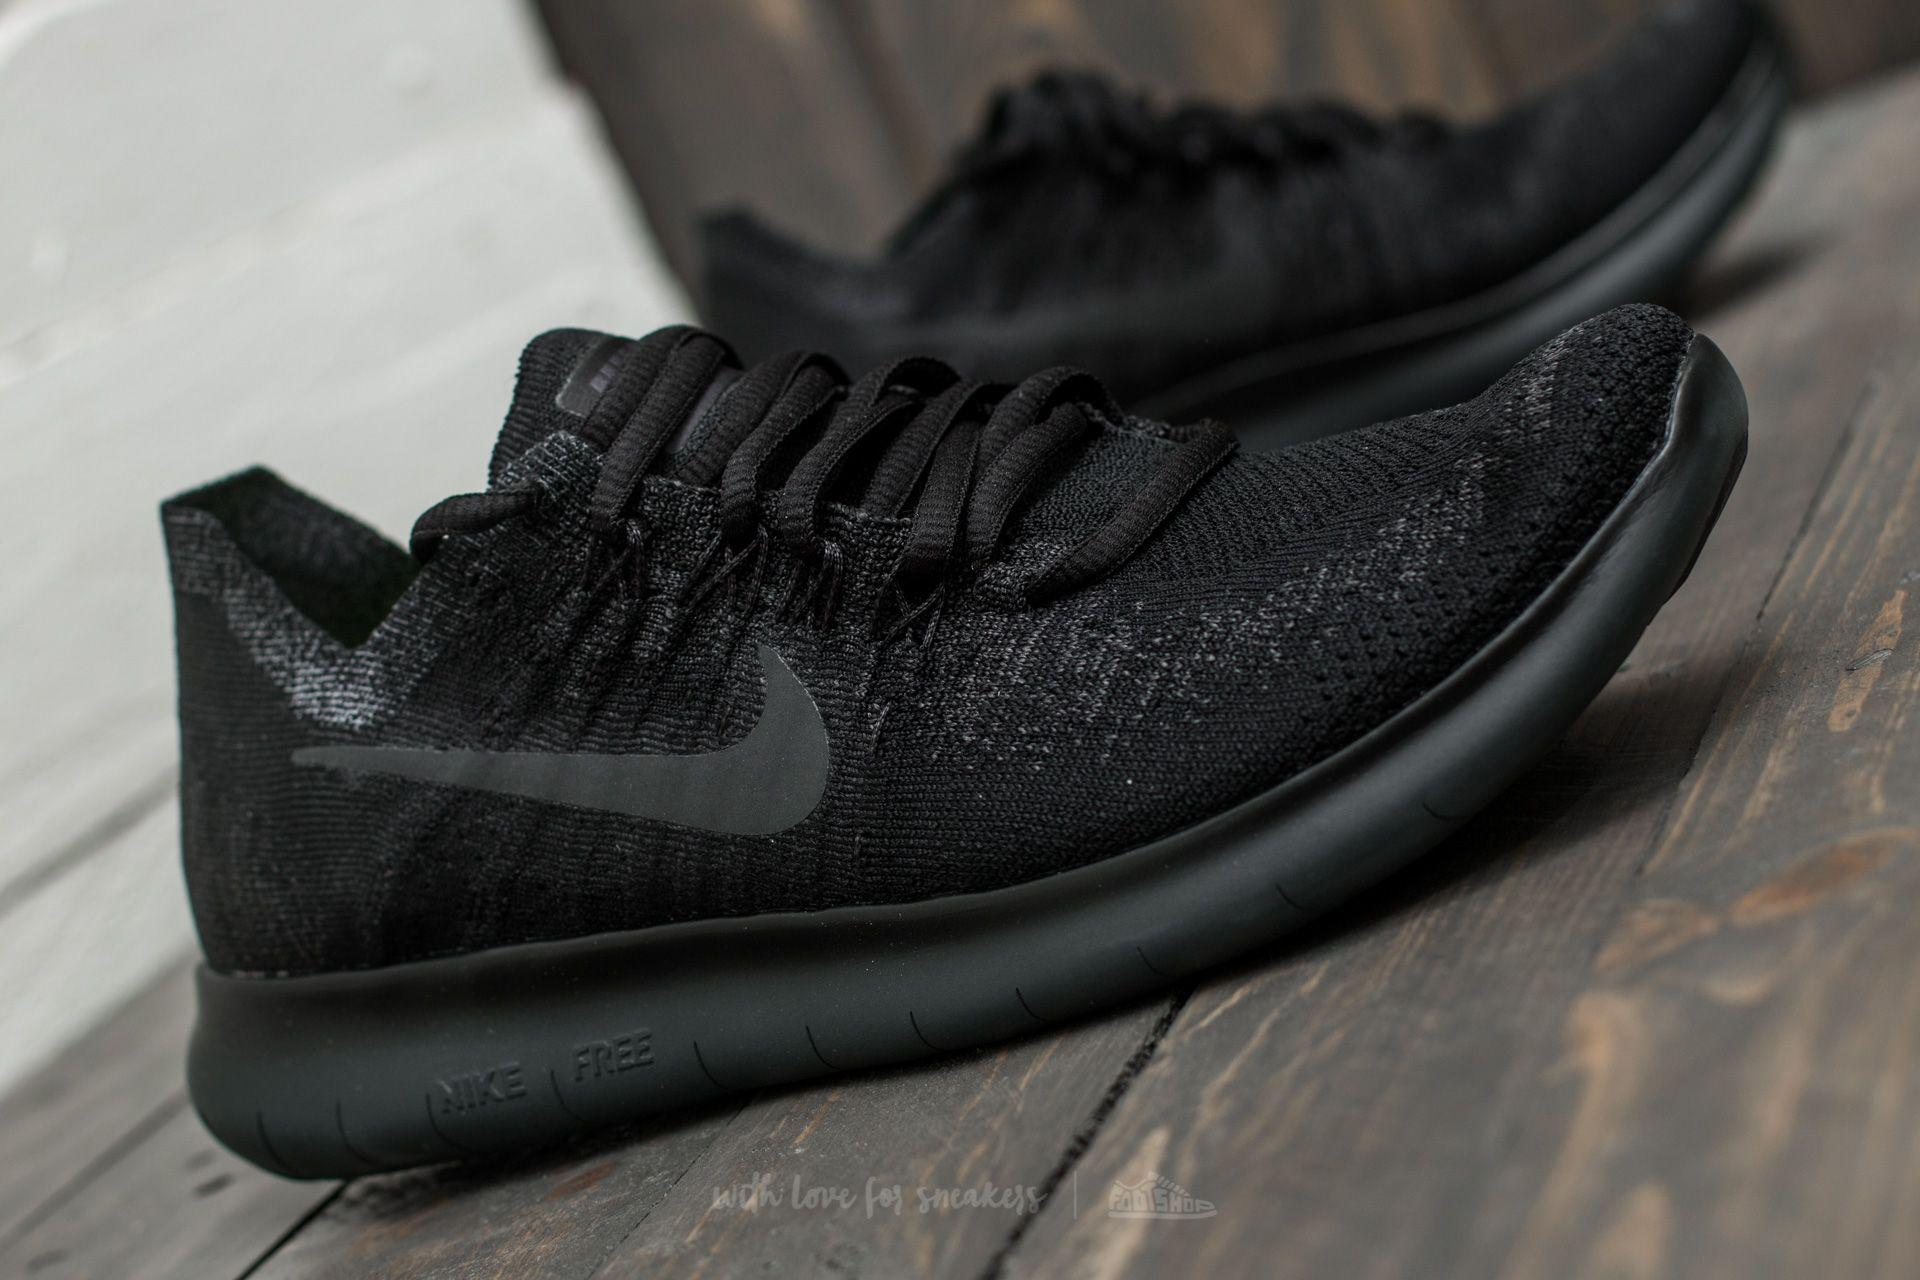 4ff335f0c5d Lyst - Nike Wmns Free Rn Flyknit 2017 Black  Anthracite-anthracite ...